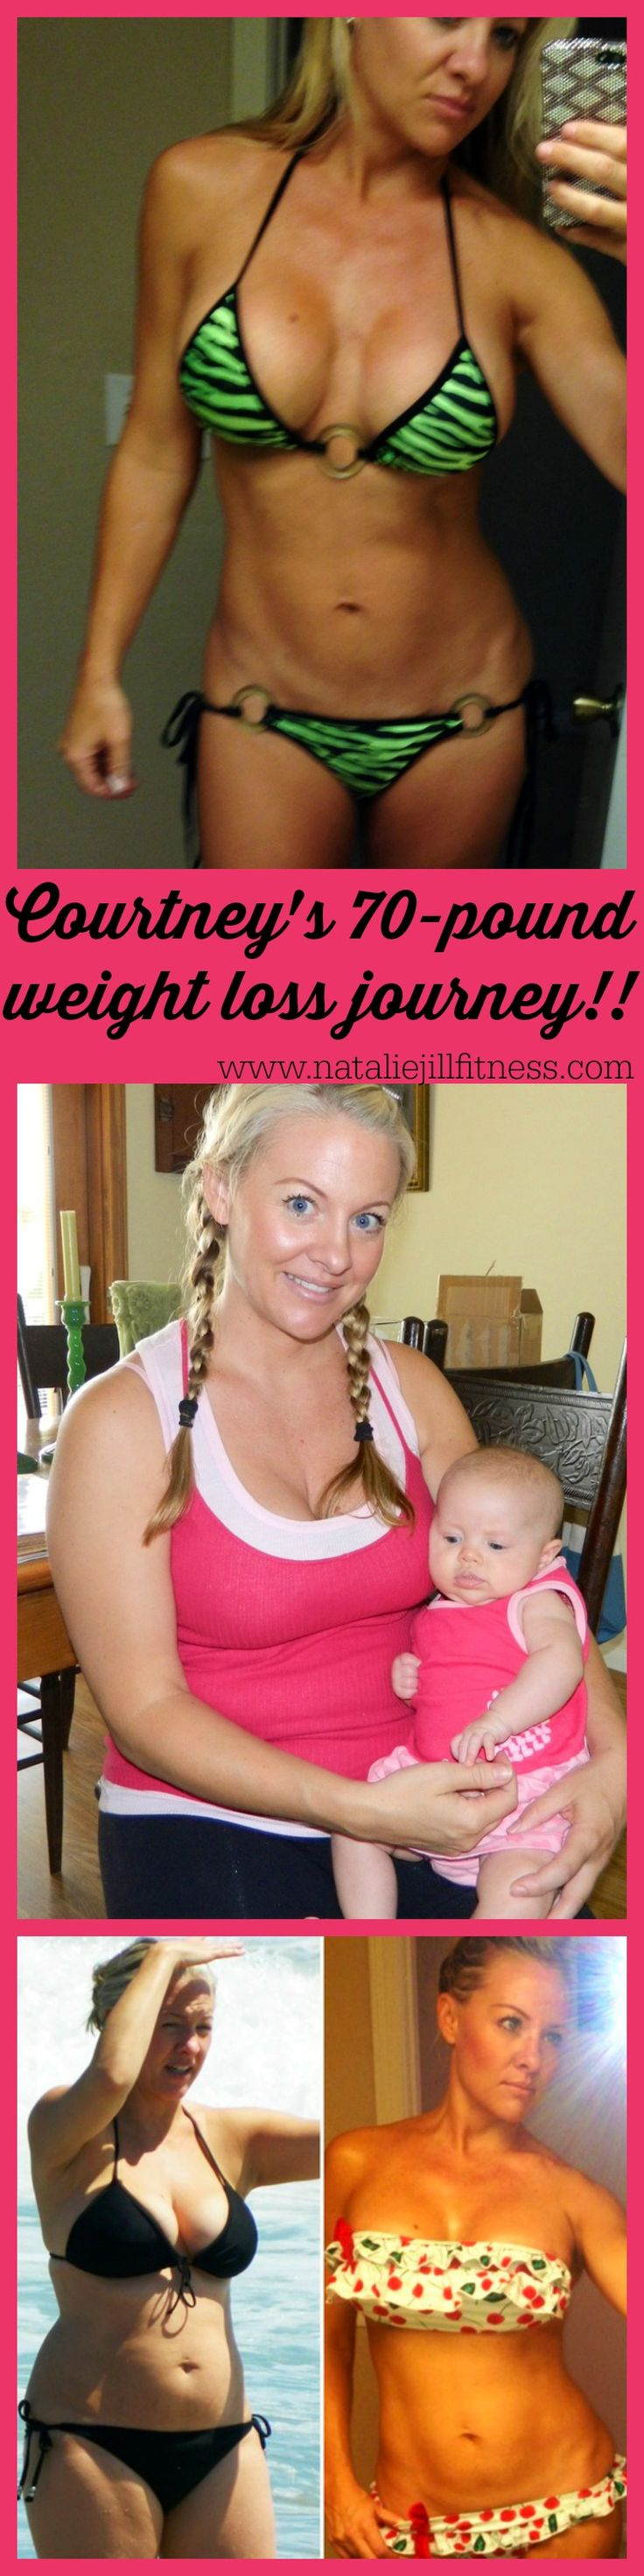 """Moms can be hot!""- Courtney was Determined to Get Fit After Baby — and Lost 70 Pounds! Click to learn HOW 38 year-old Courtney successfully lost the weight and turned her life around! http://nataliejillfitness.com/c-section-to-bikini-ready/"